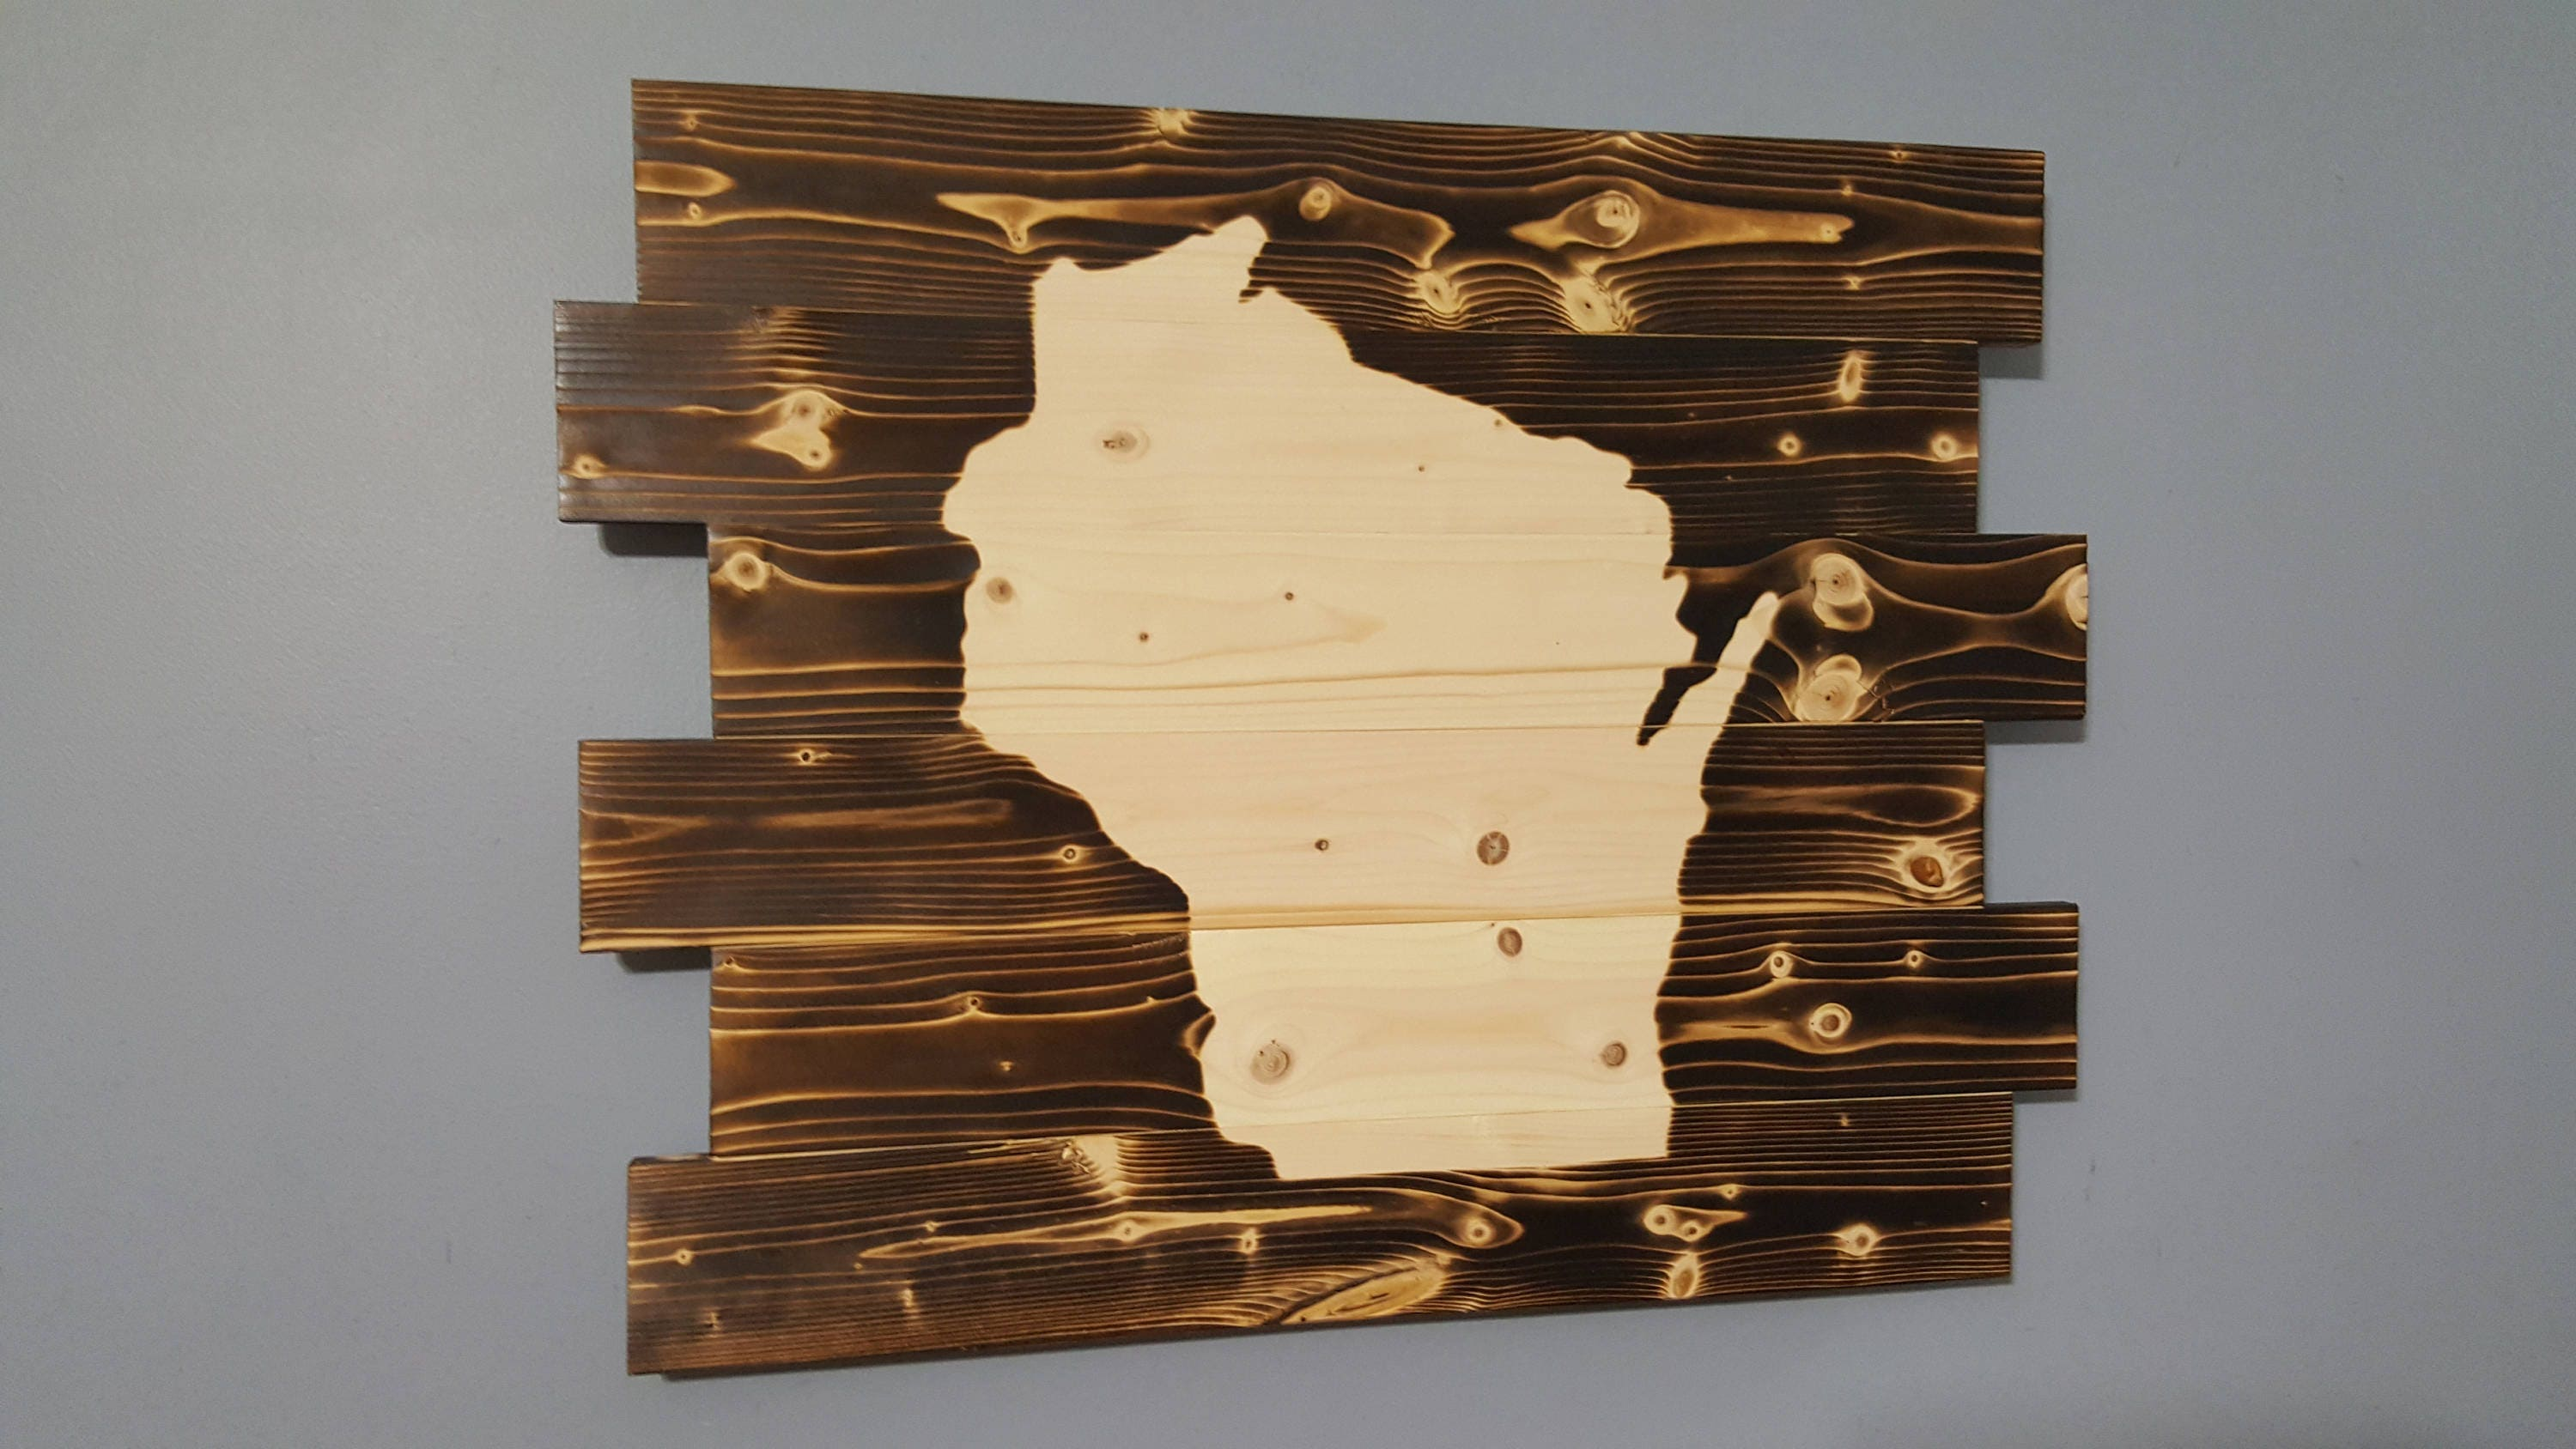 State of Wisconsin Silhouette Wooden Rustic Wall Art all